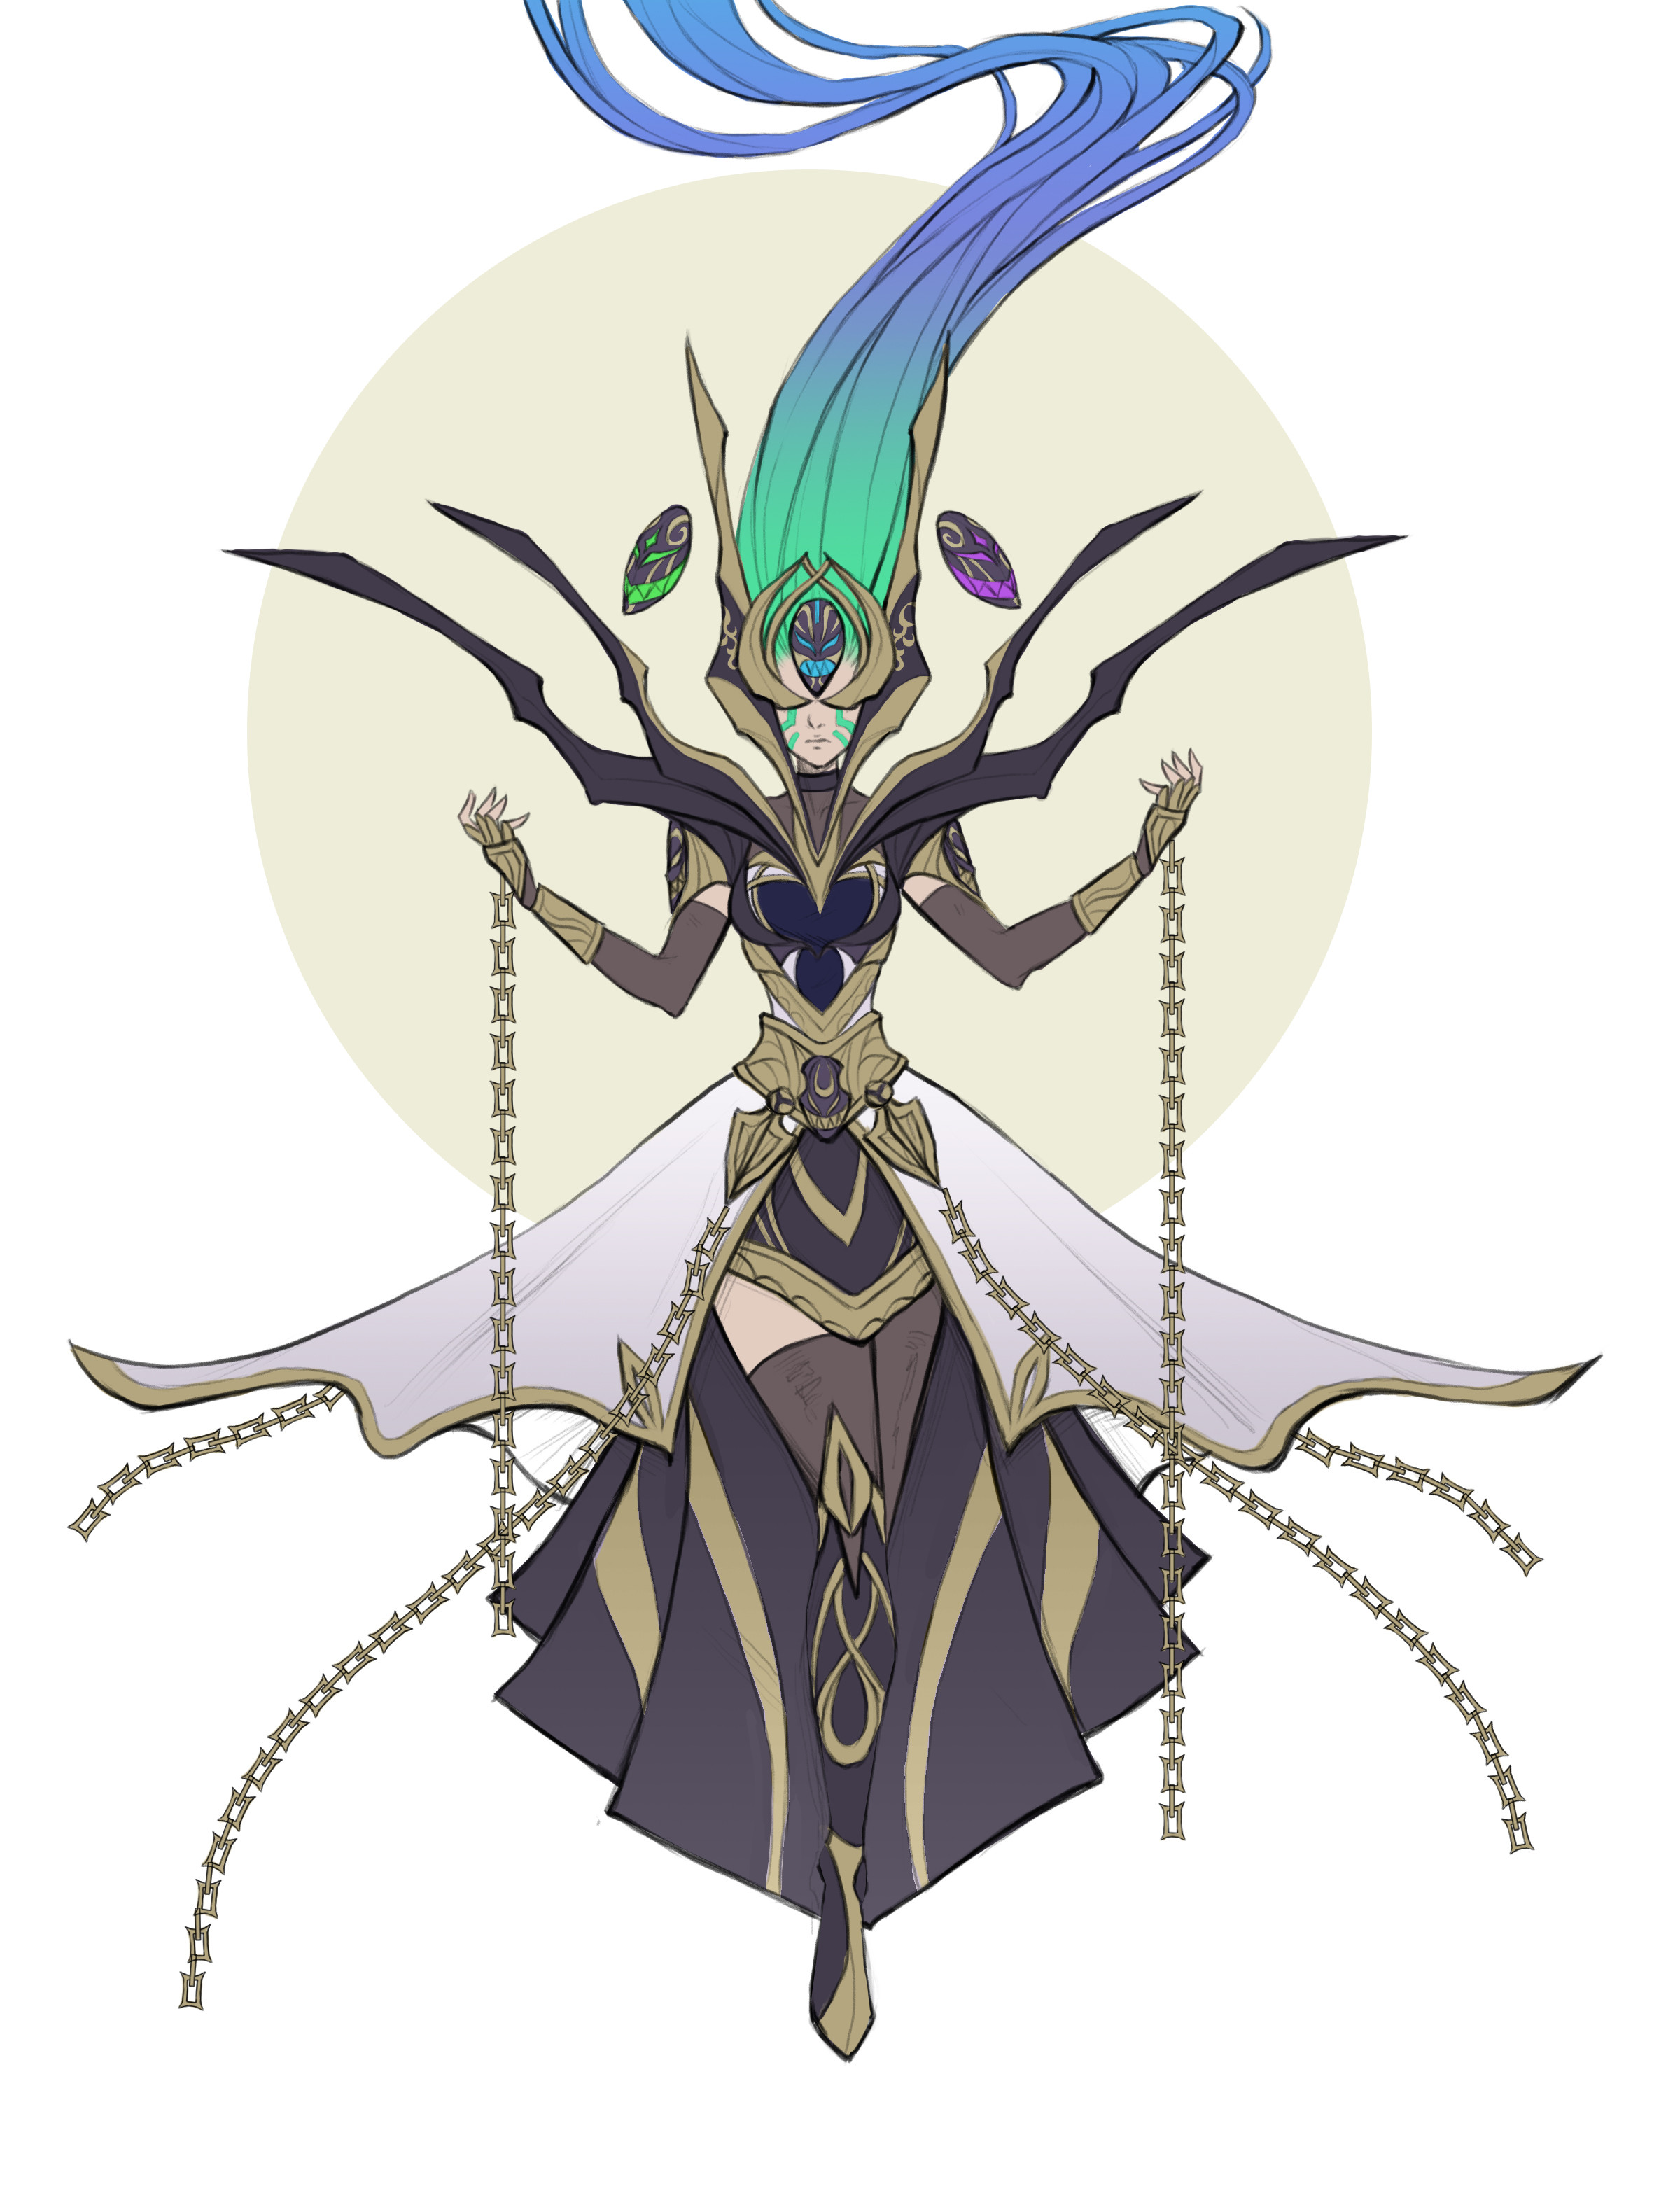 God-Queen Borea [2/3] Flat colors